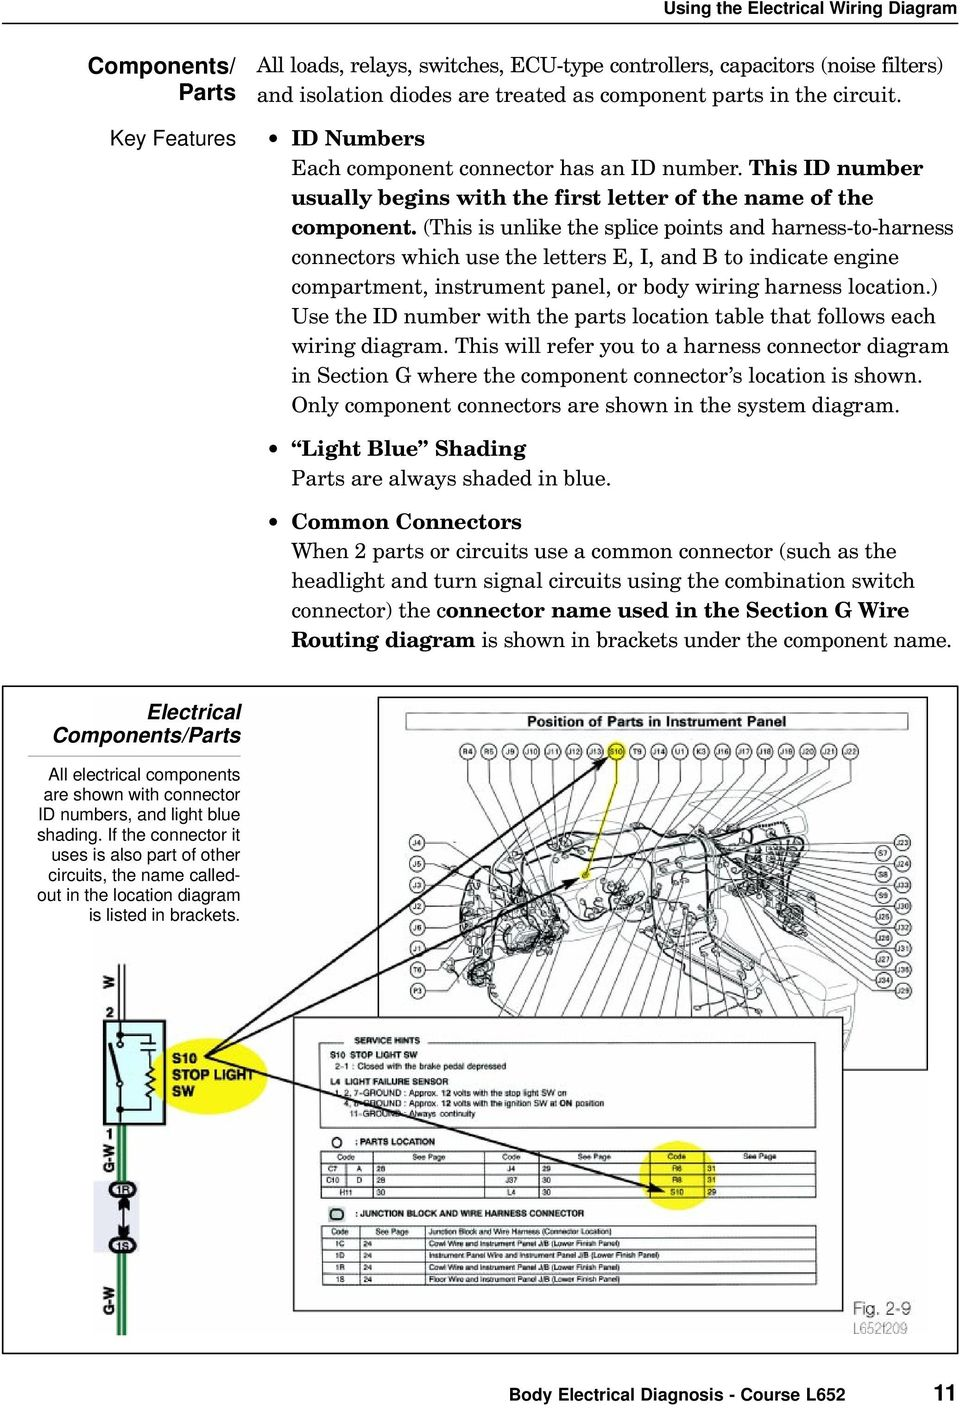 Using The Electrical Wiring Diagram Pdf Splice This Is Unlike Points And Harness To Connectors Which Use Letters